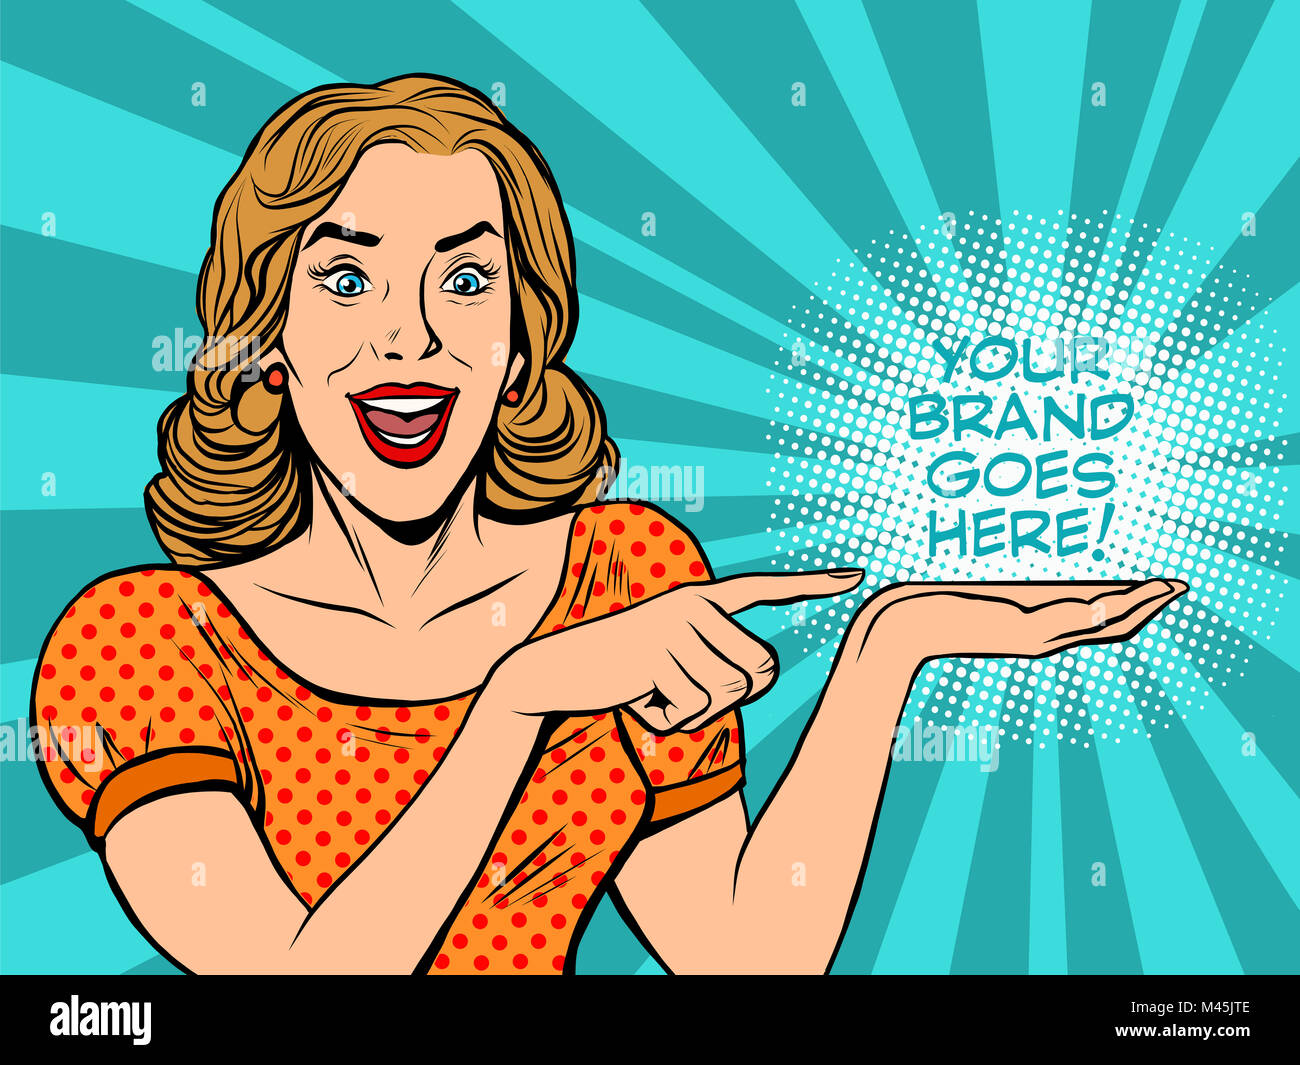 Girl promotional your brand goes here - Stock Image